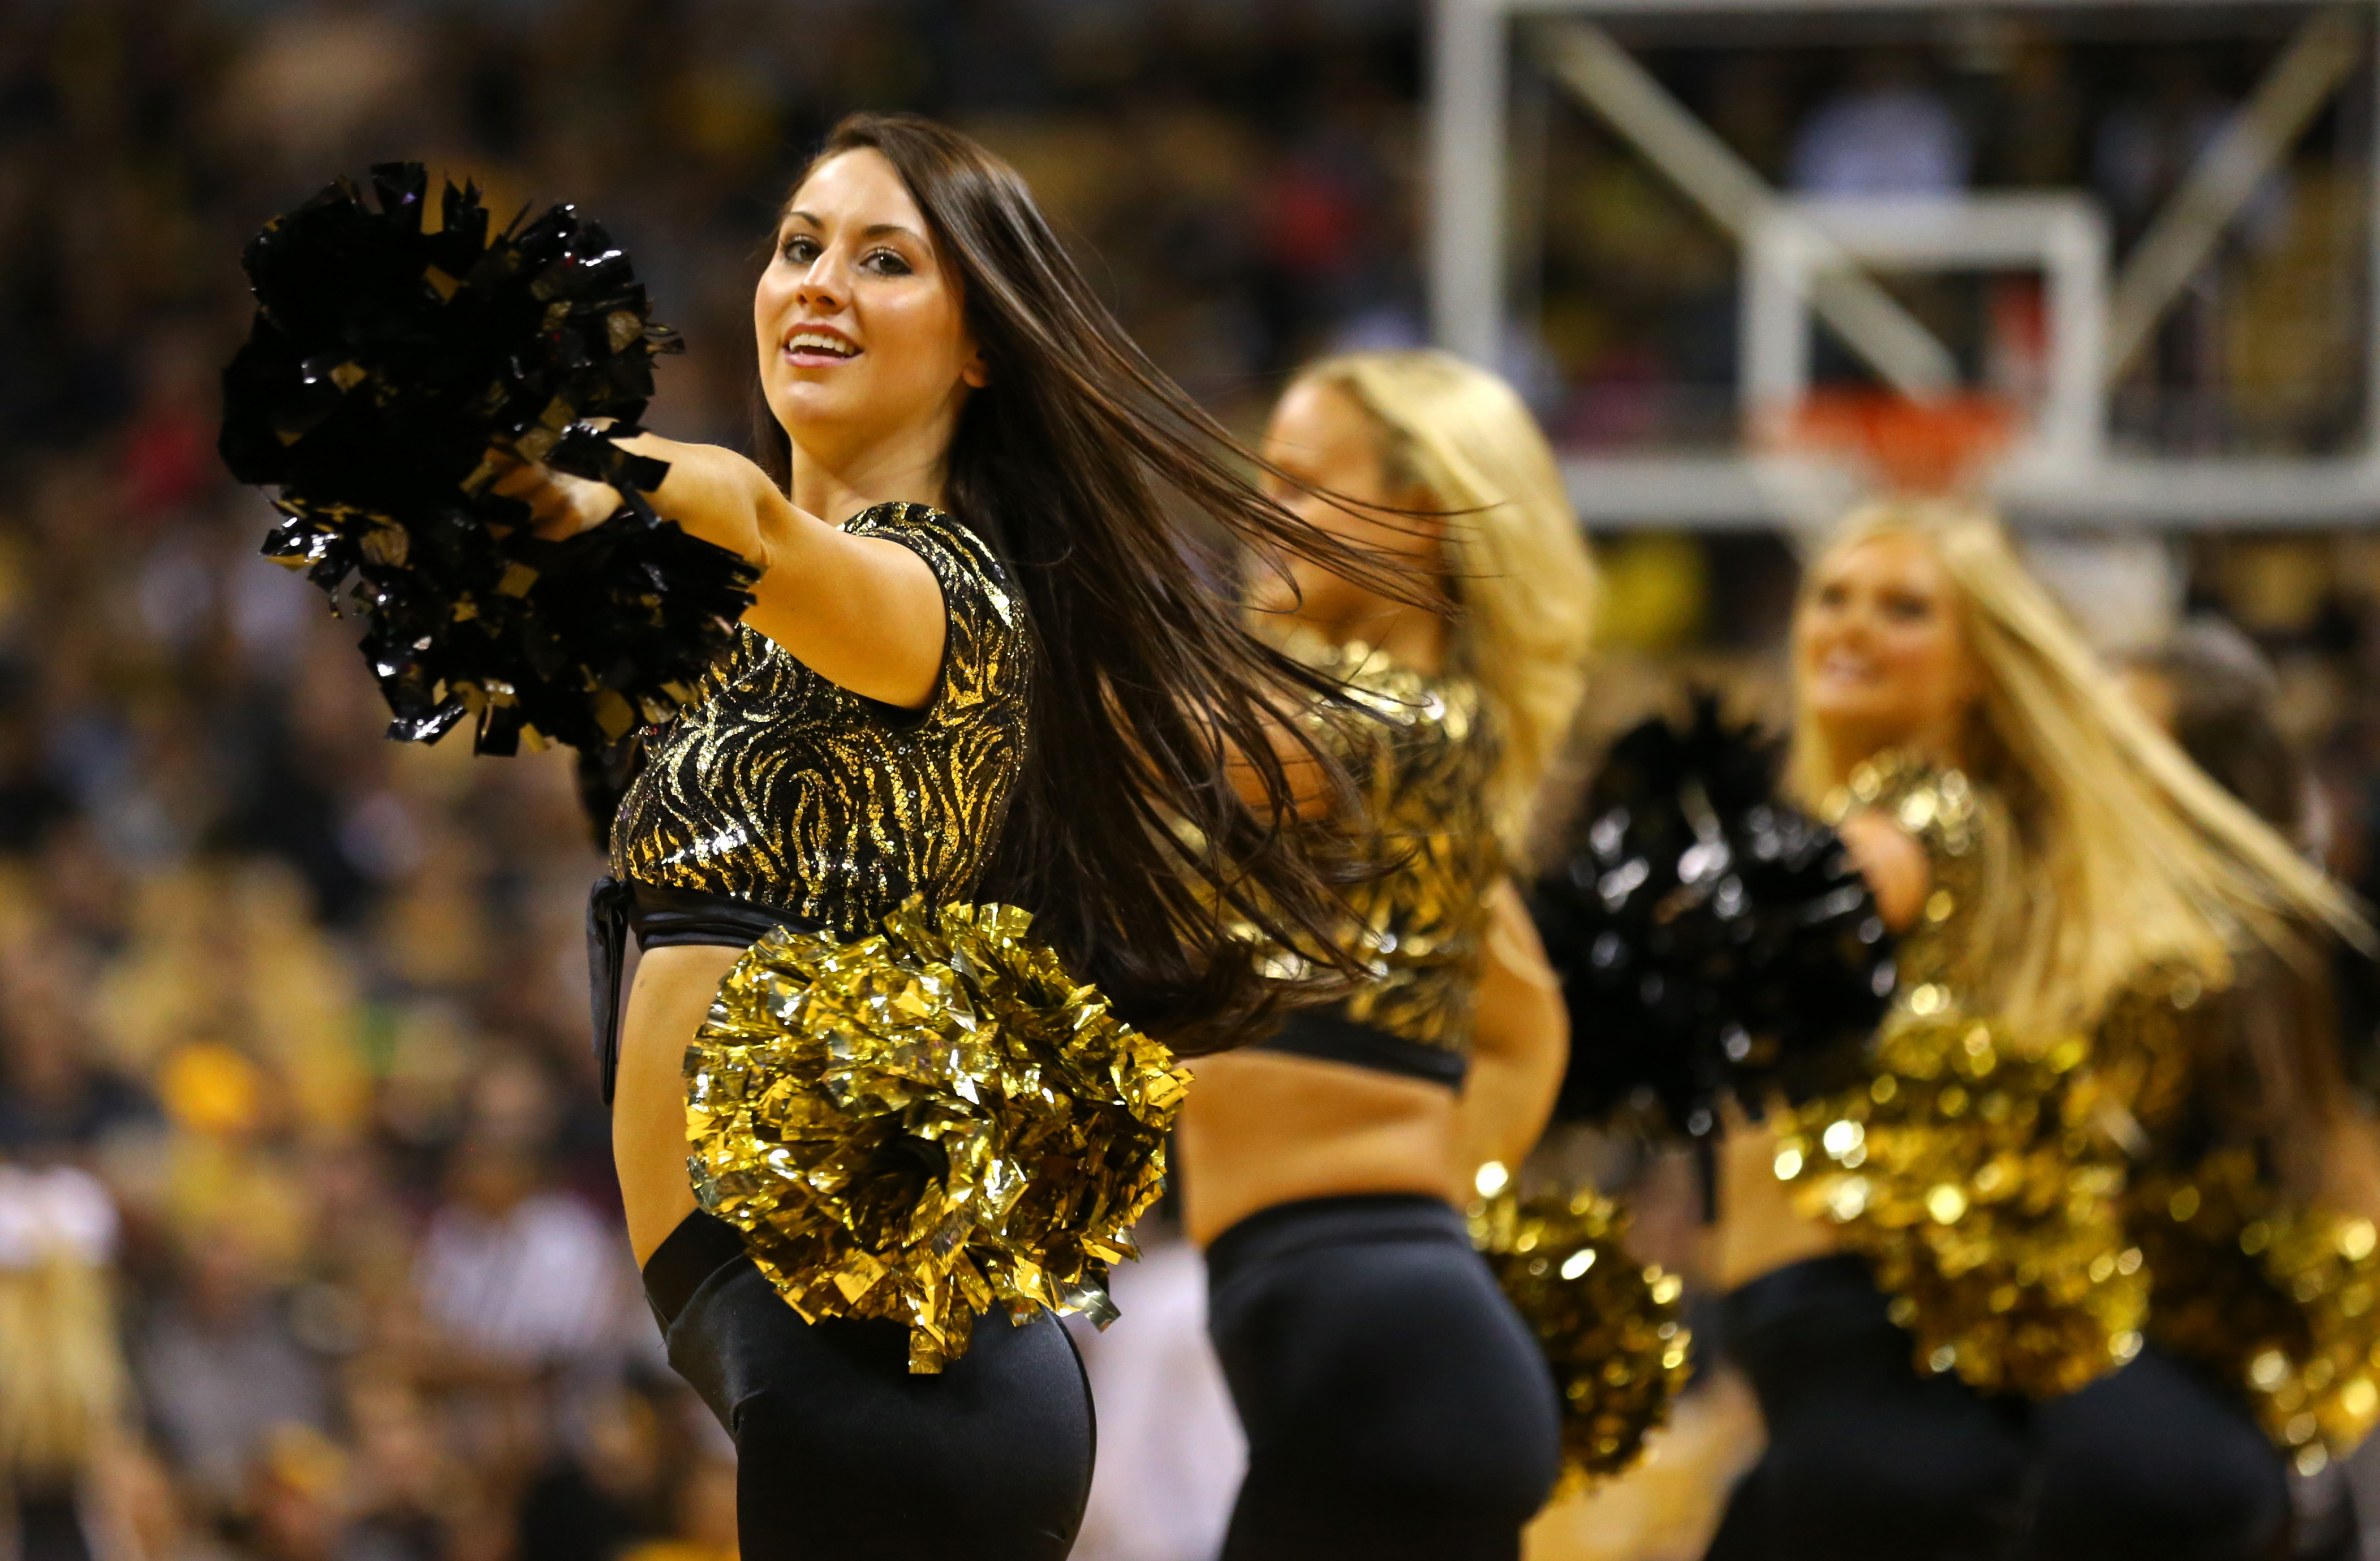 Nov 13, 2017; Columbia, MO, USA; Missouri Tigers cheerleaders perform in the first half of the game against the Wagner Seahawks at Mizzou Arena. Mandatory Credit: Jay Biggerstaff-USA TODAY Sports